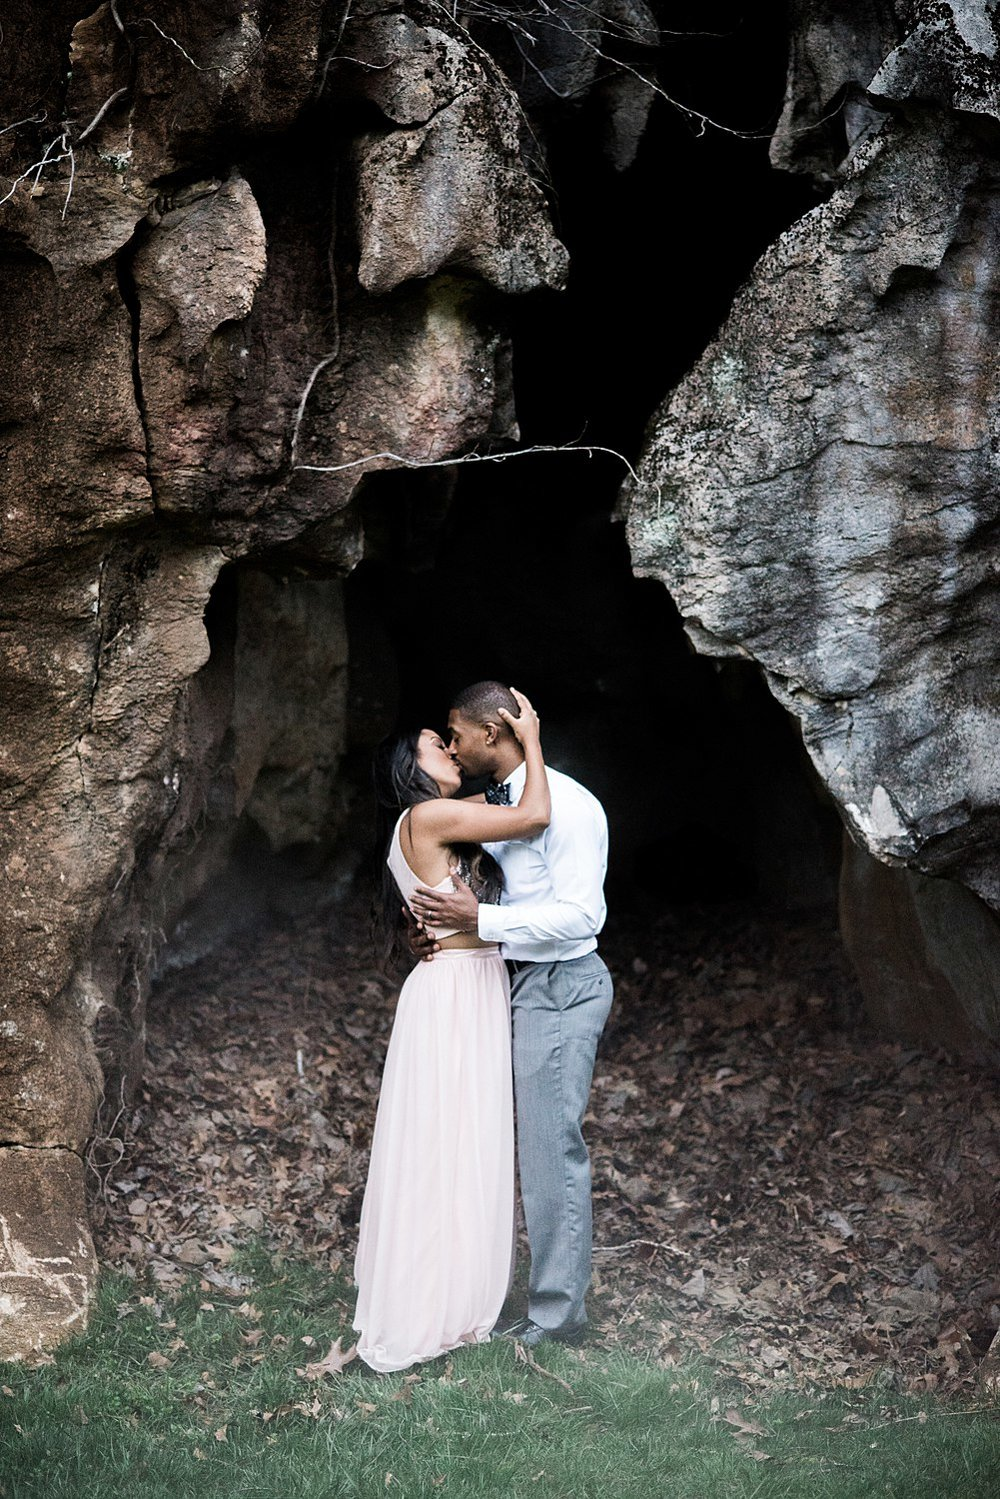 the quarry venue - knoxville wedding venue - knoxville wedding photographer - juicebeats photography